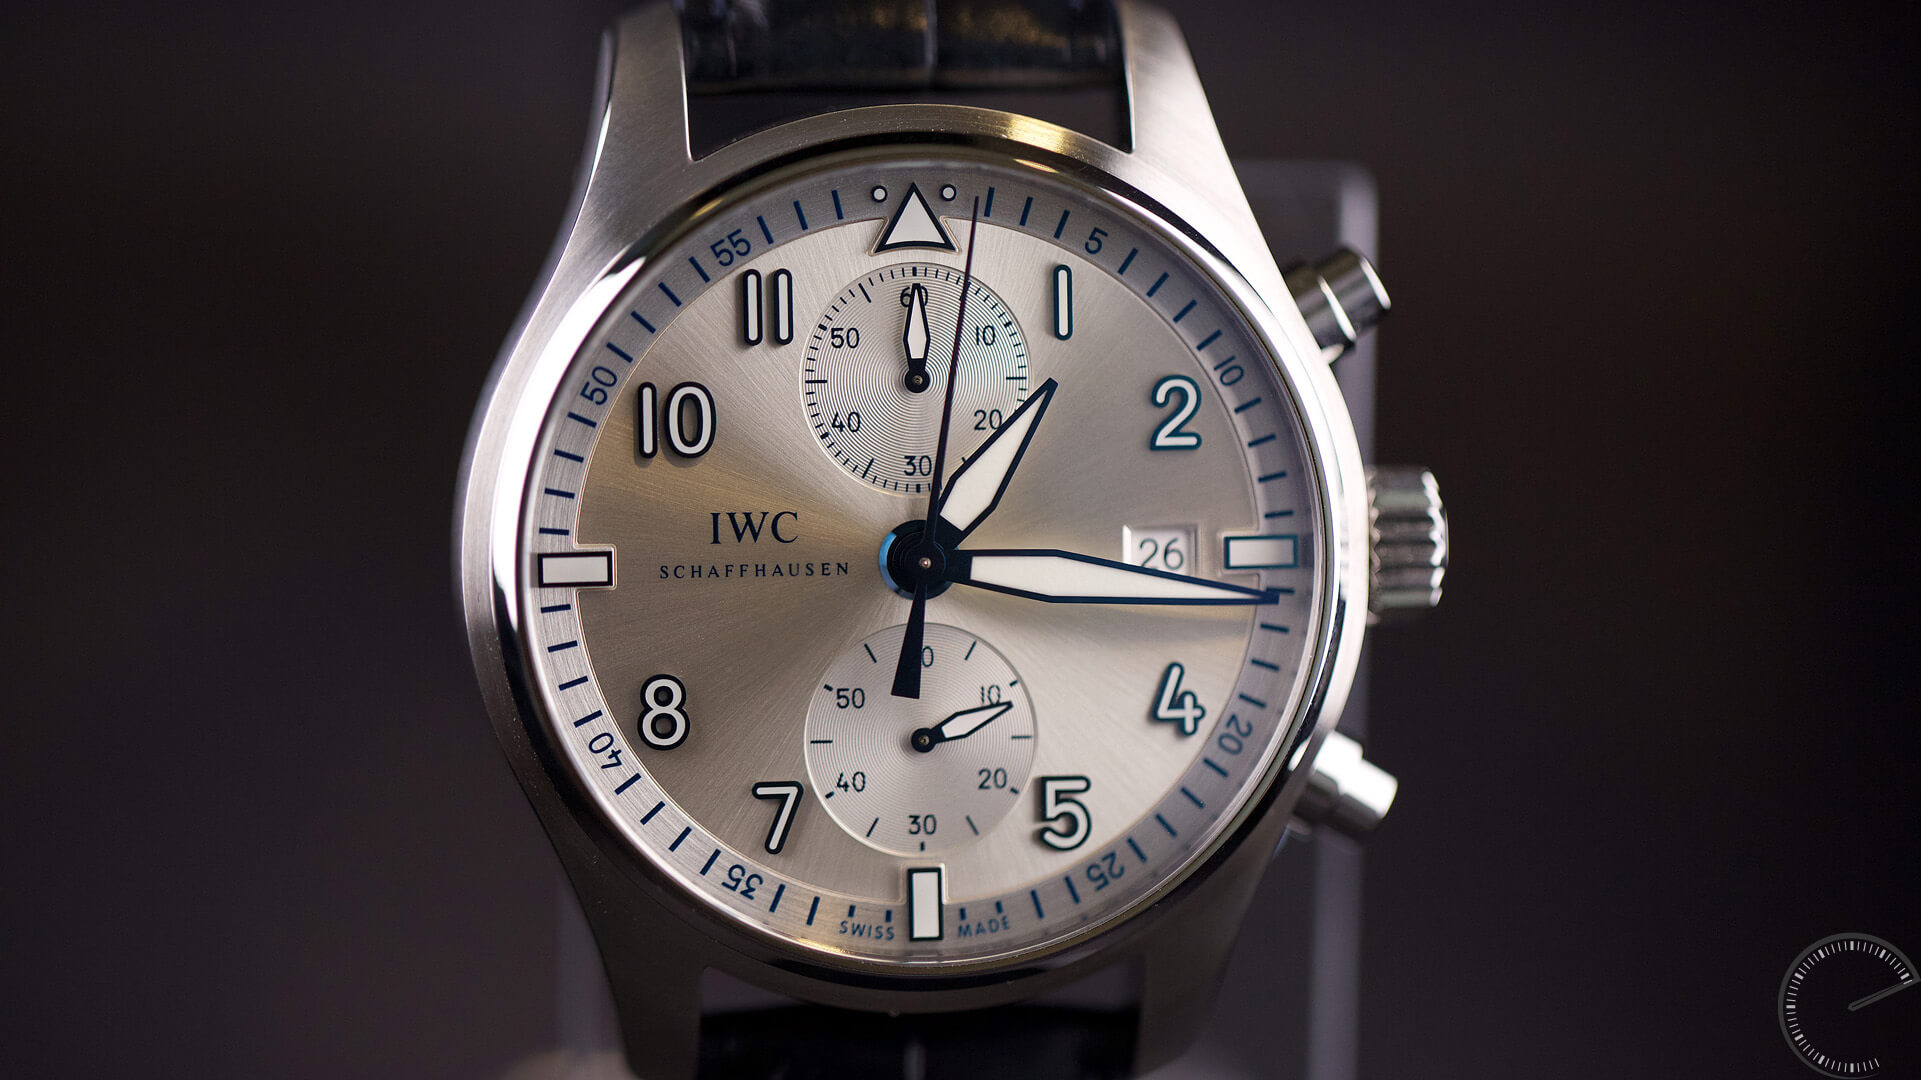 Image of IWC Pilot's Watch Spitfire Chronograph BFI Limited Edition 2016